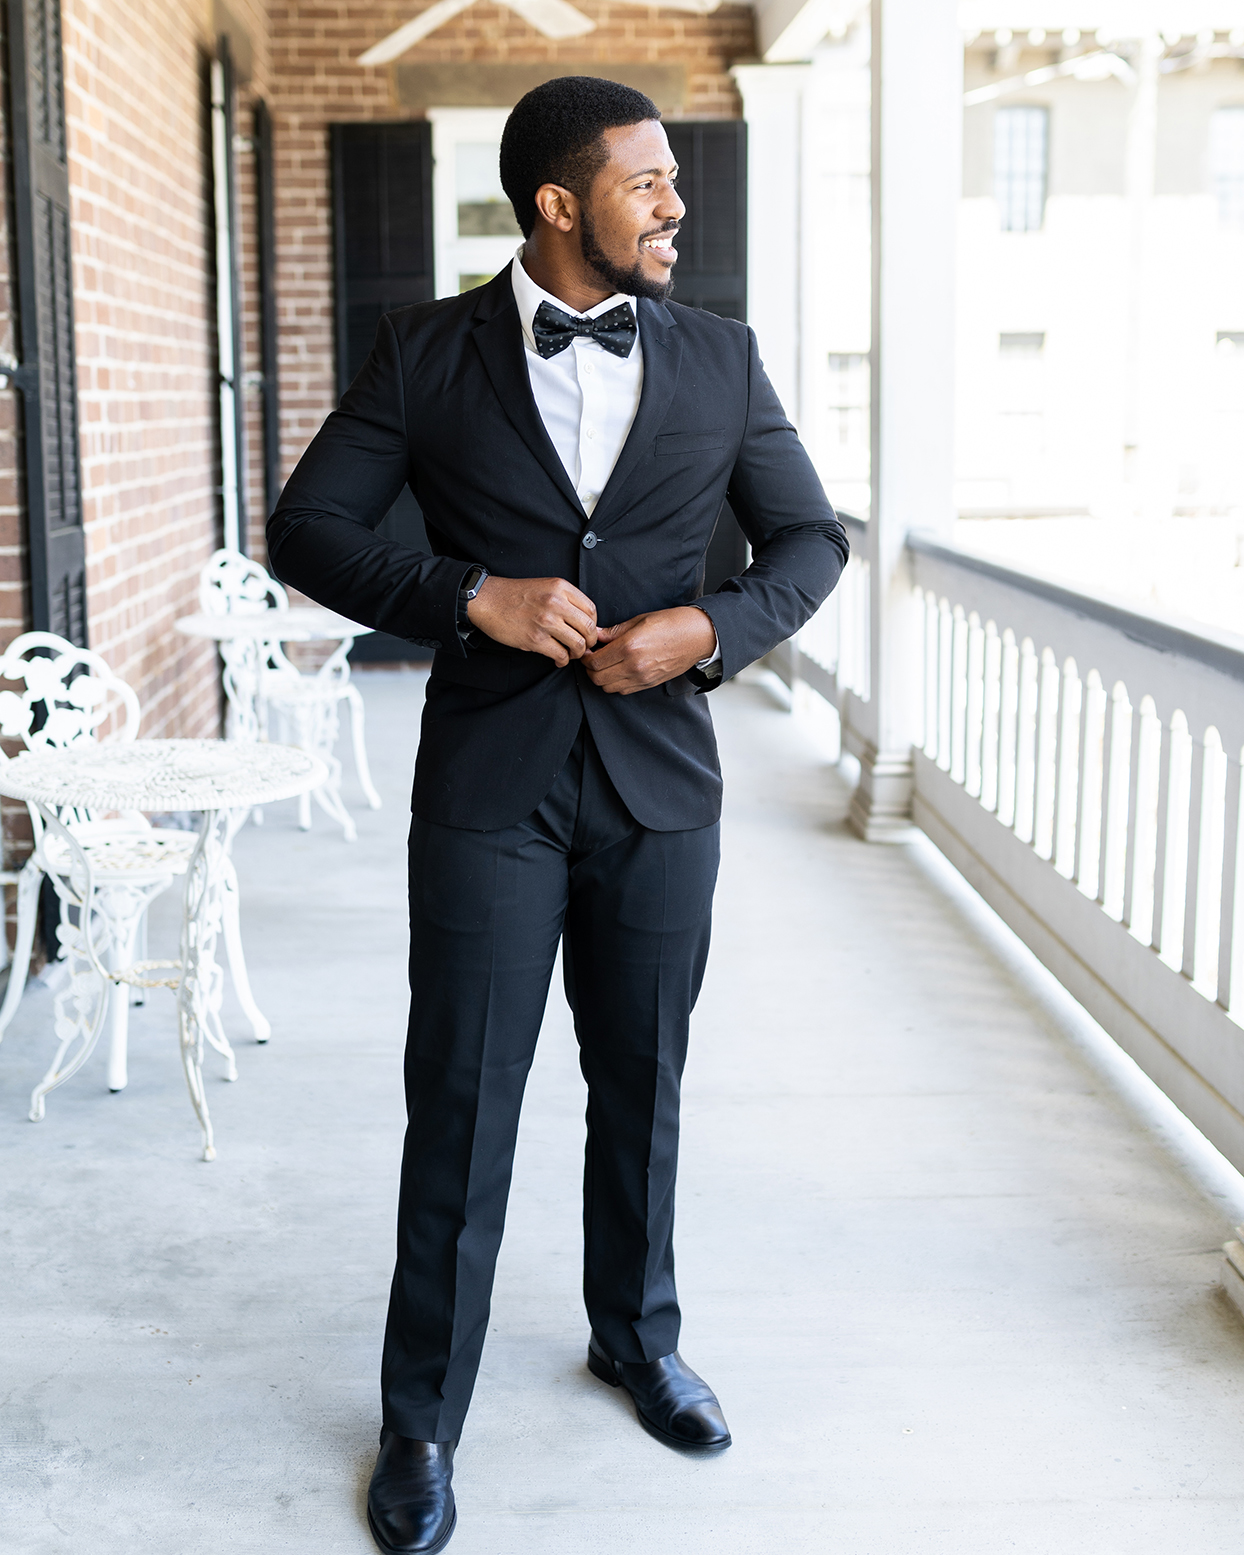 groom in black tux and polka dotted bow tie